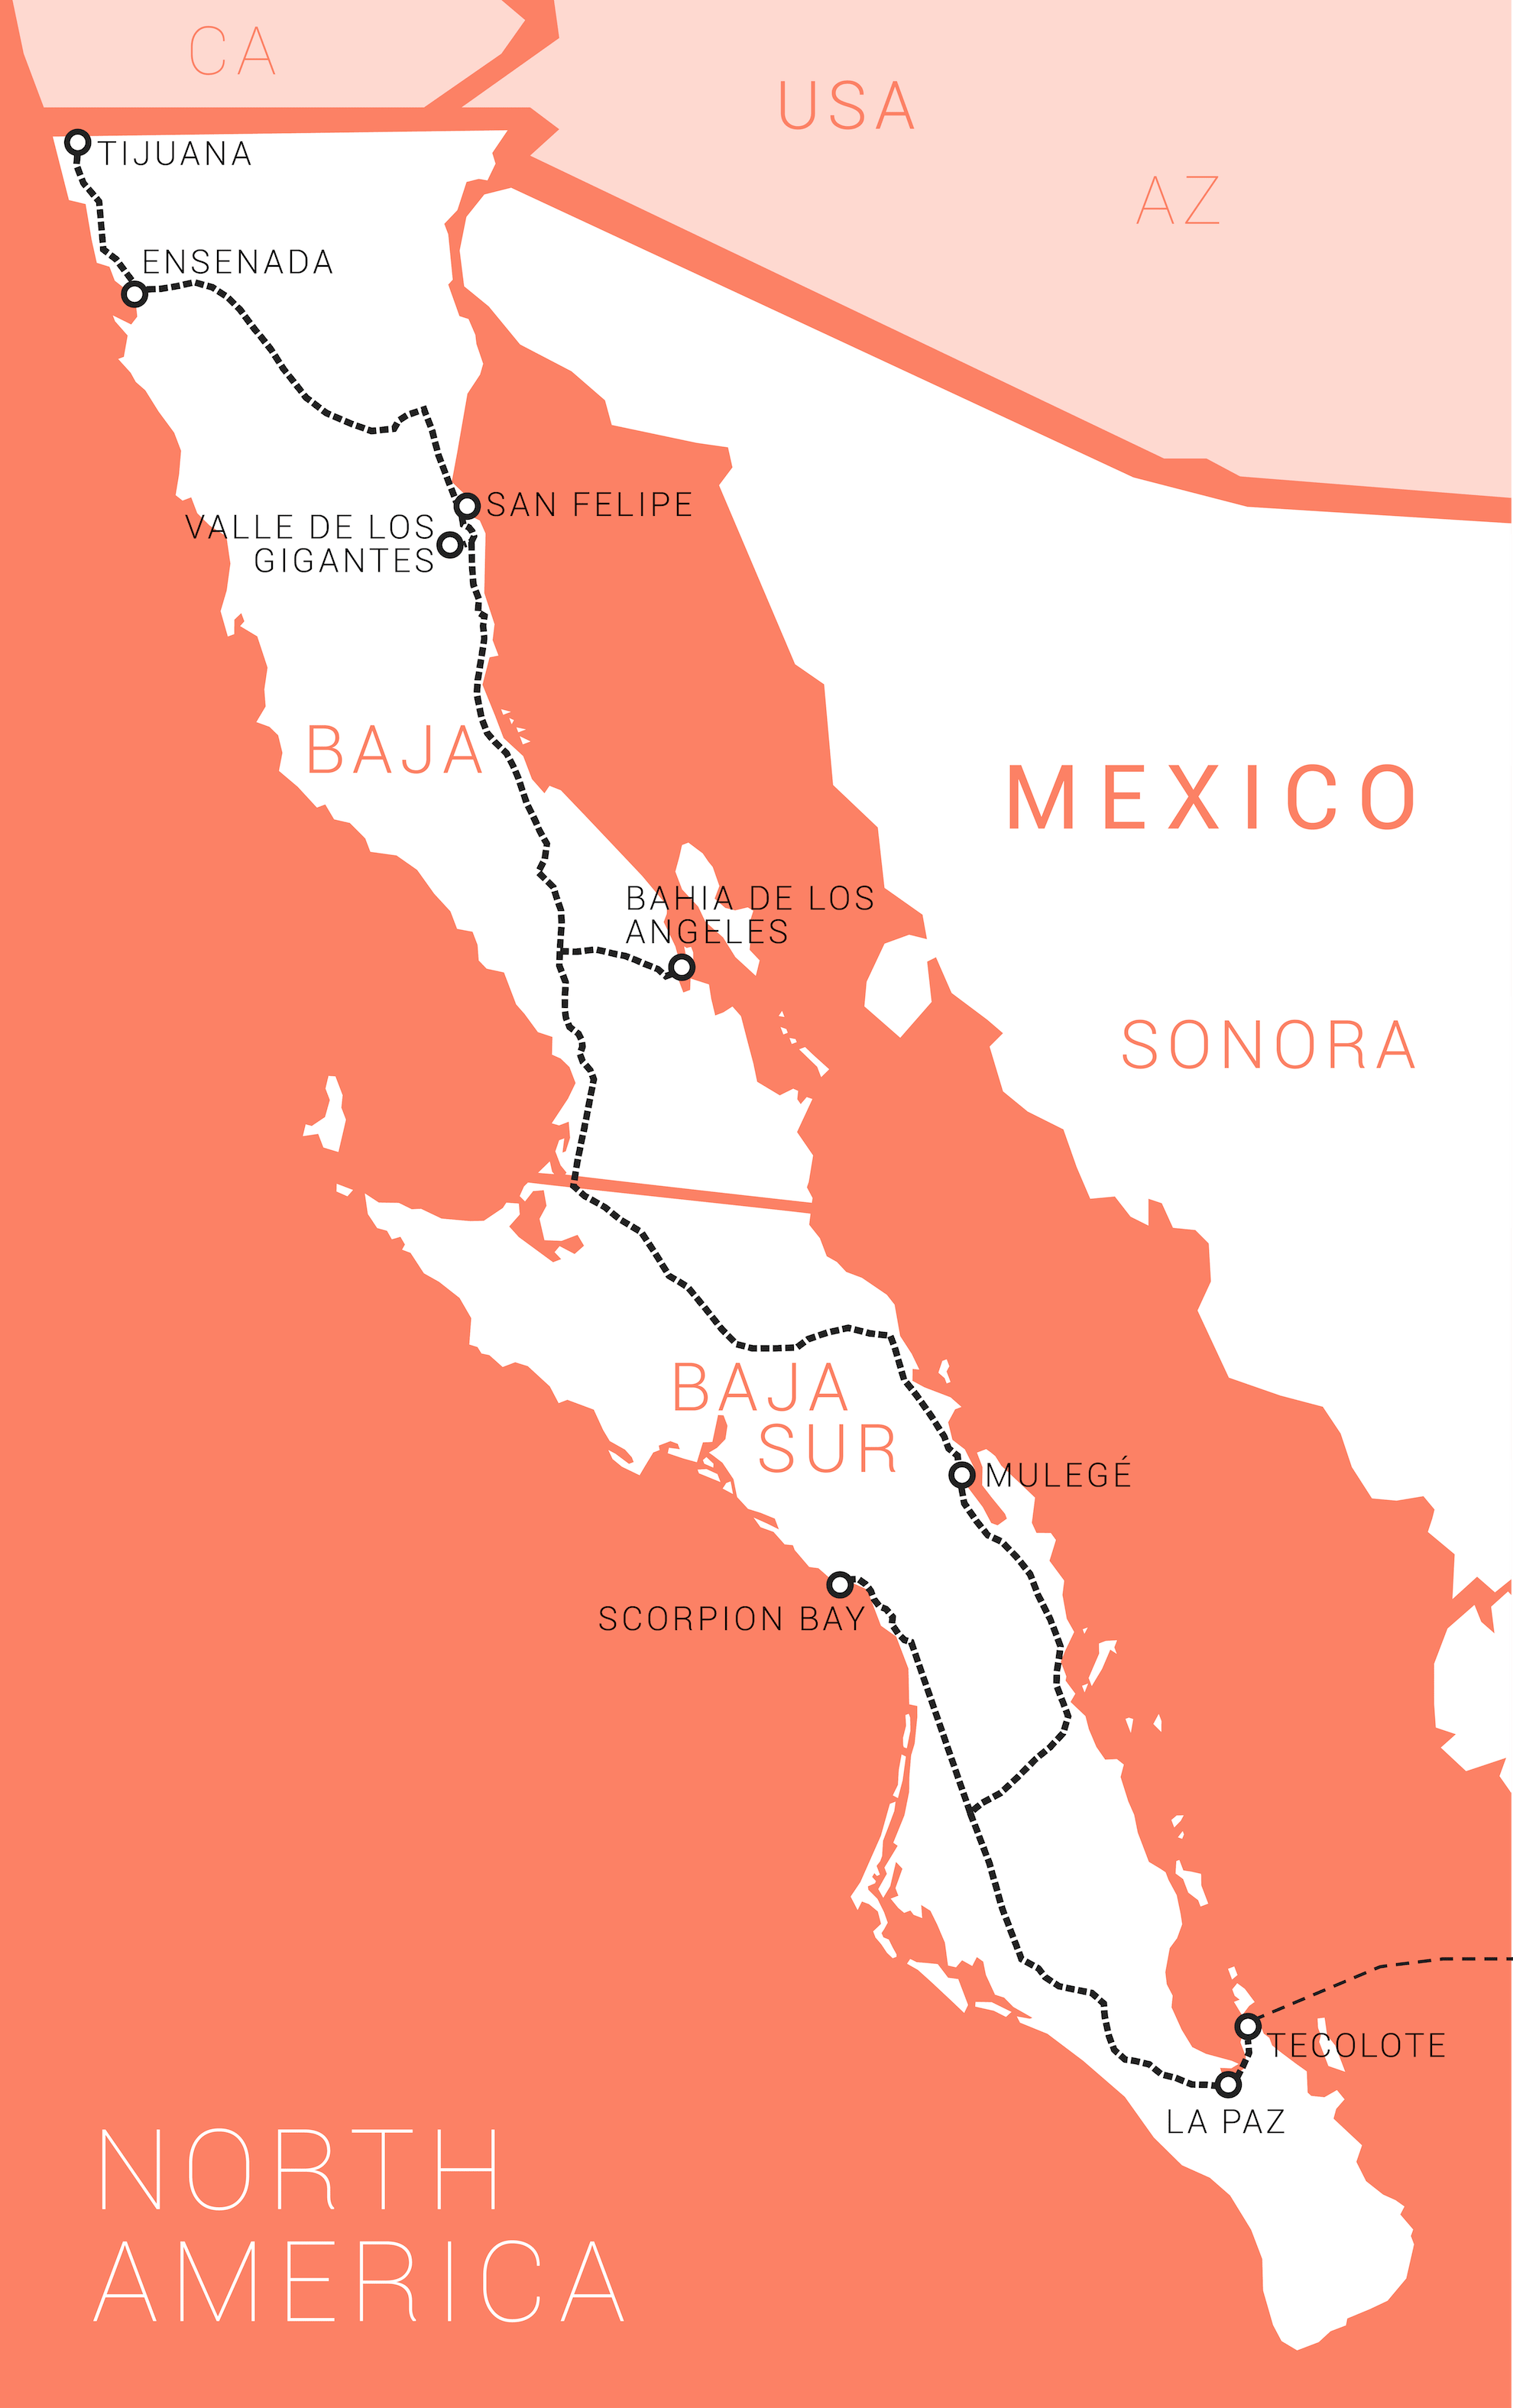 Bahia De Los Angeles Map.Camerivan Com Panamericana The Journey Of A Lifetime Mexico